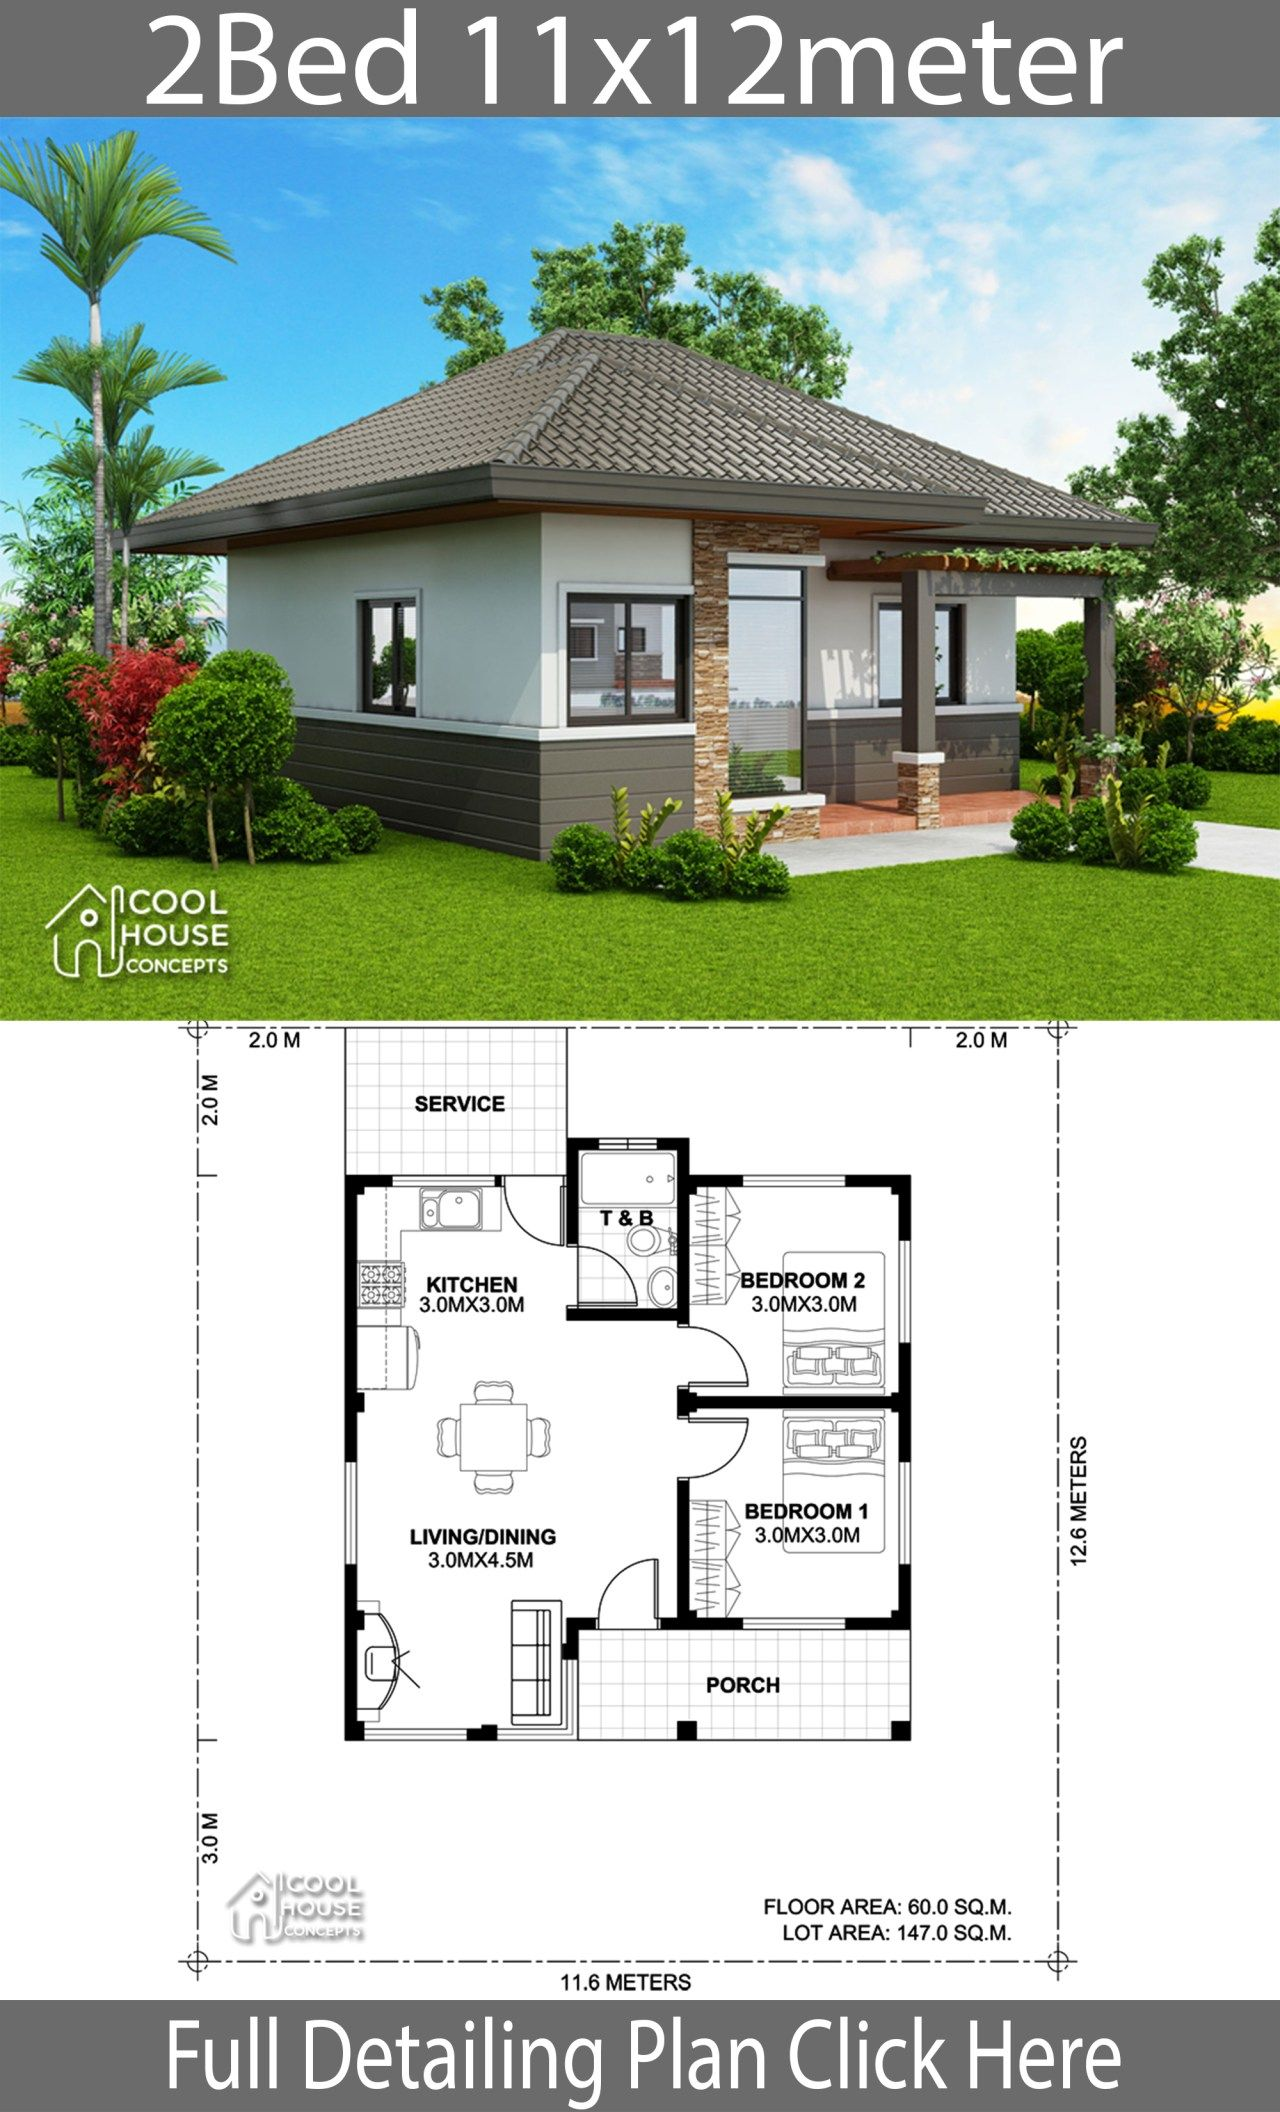 Home Design Plan 11x12m With 2 Bedrooms Home Ideas Home Design Plan House Design Home Design Plans